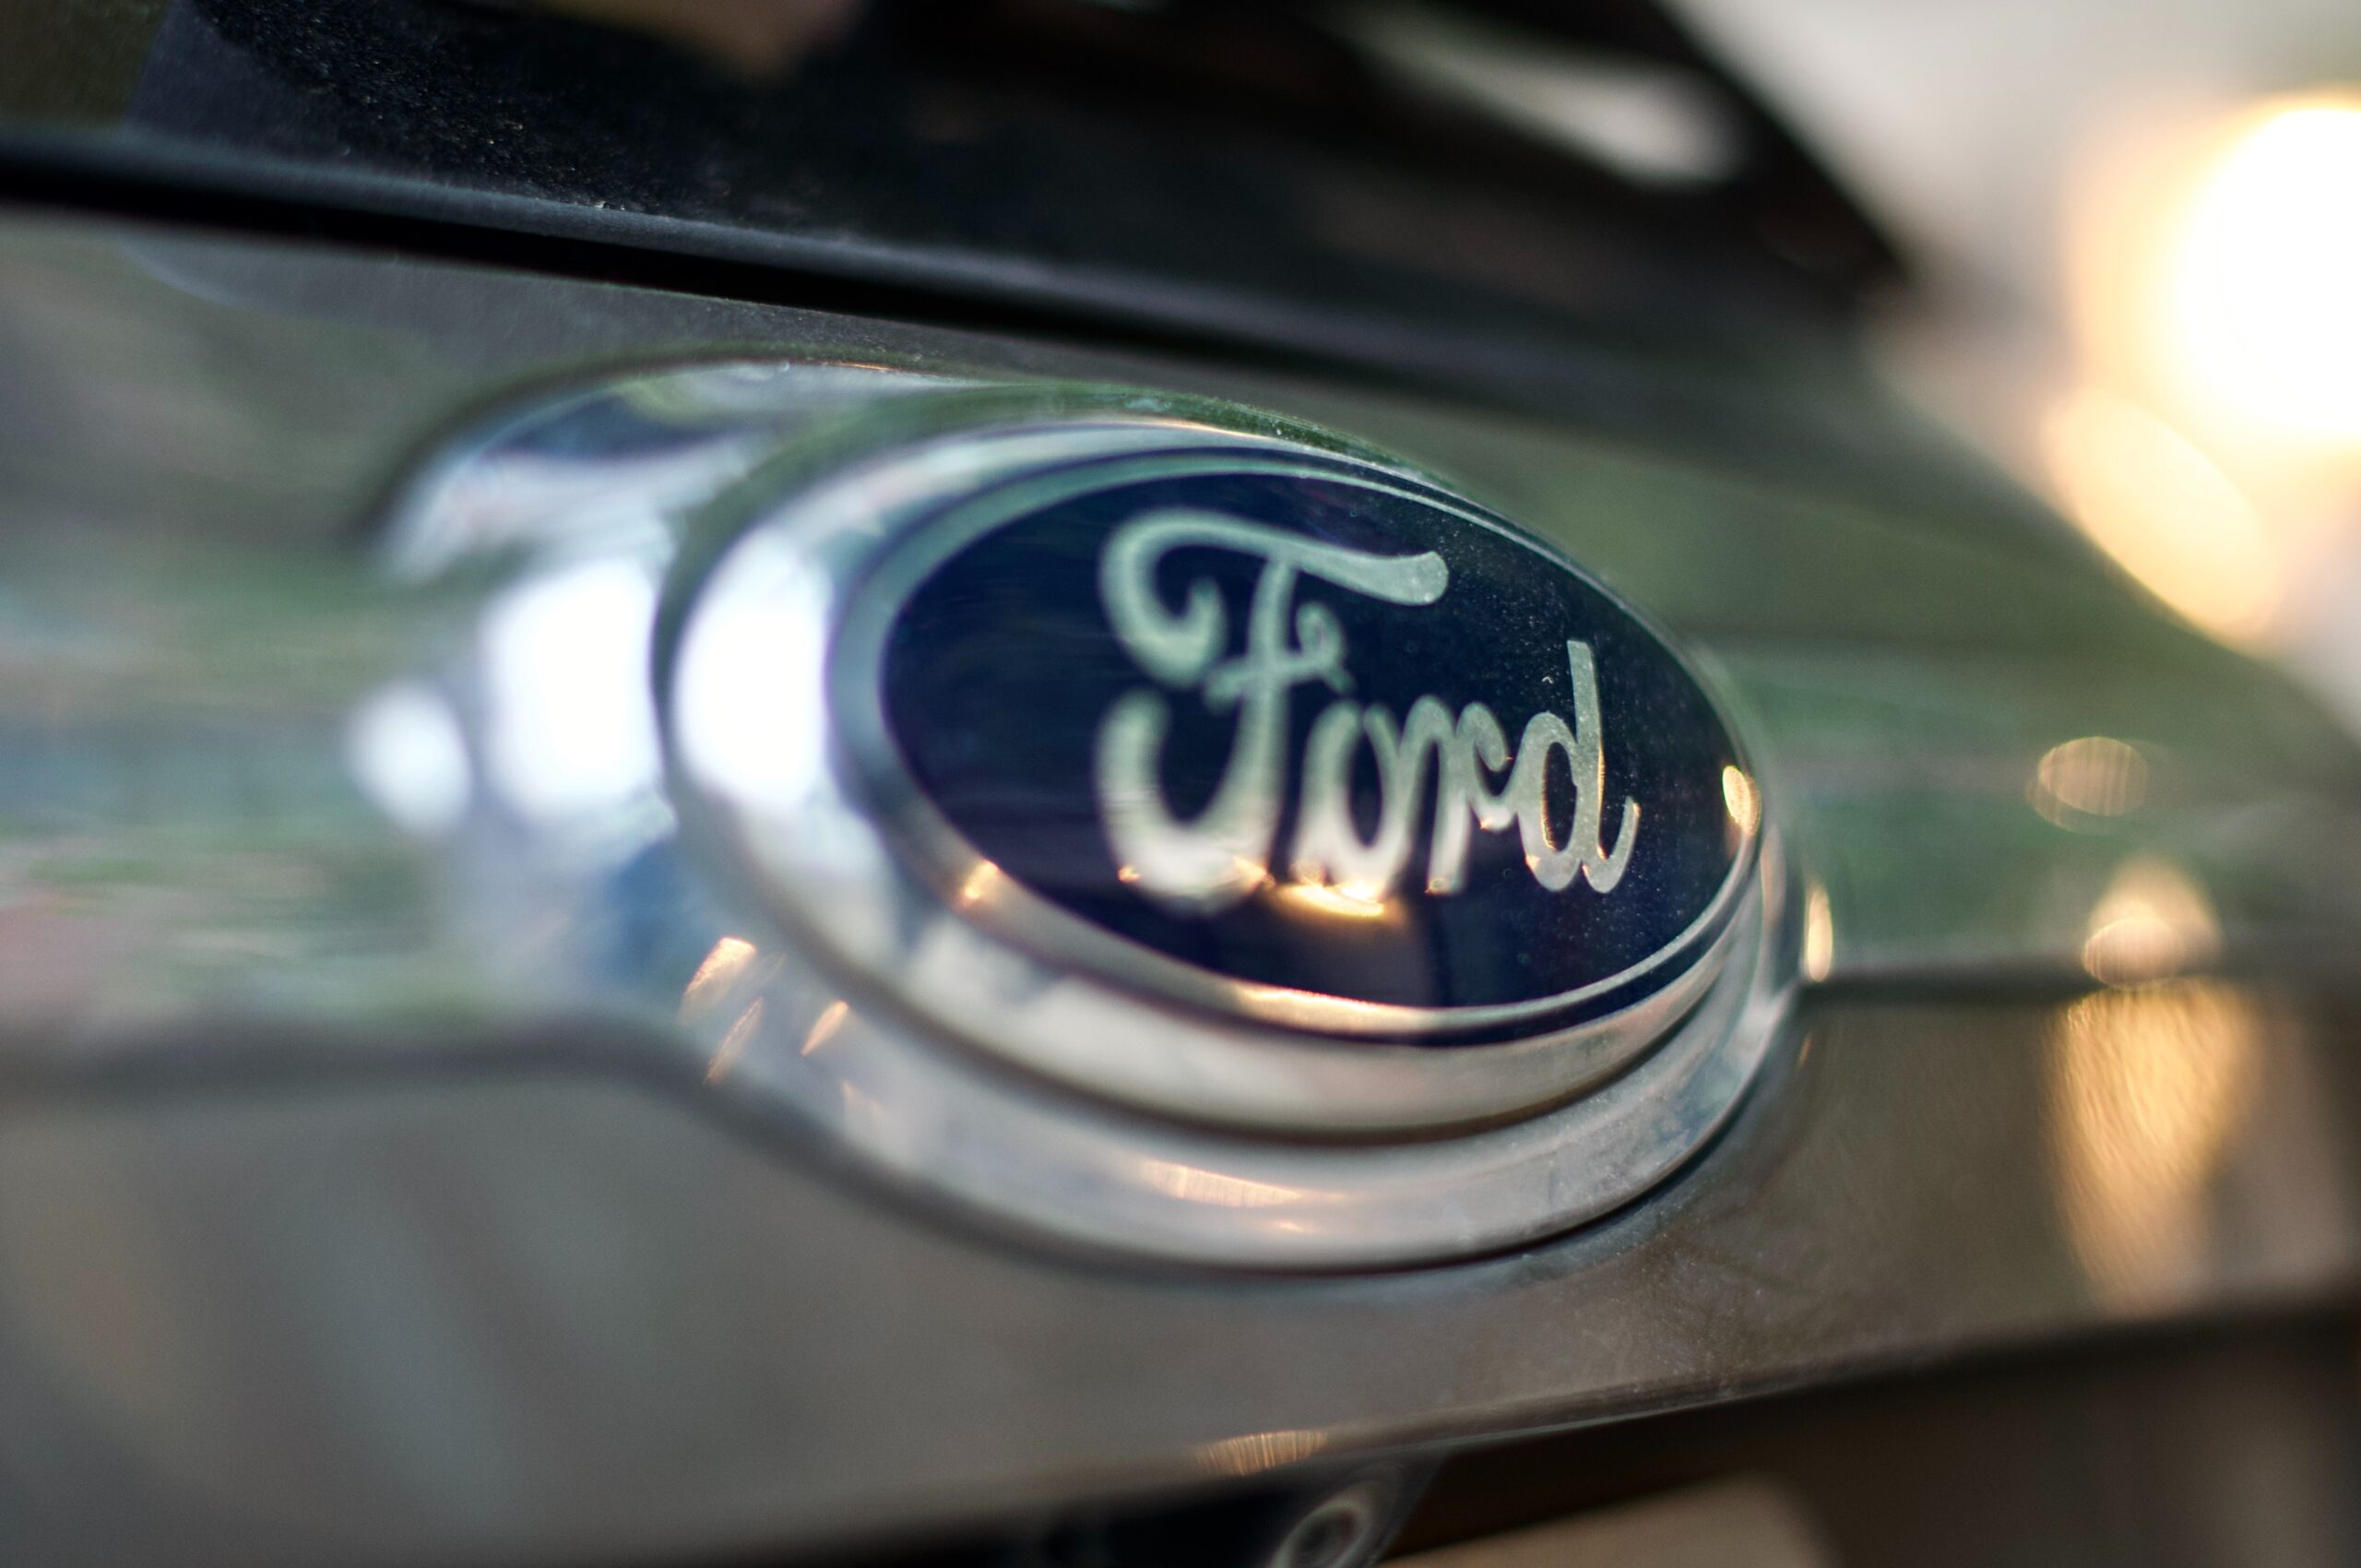 Ford is developing the F-150 Lightening all-electric light truck and planning to list it at $39,974 when it begins selling in fall 2022.